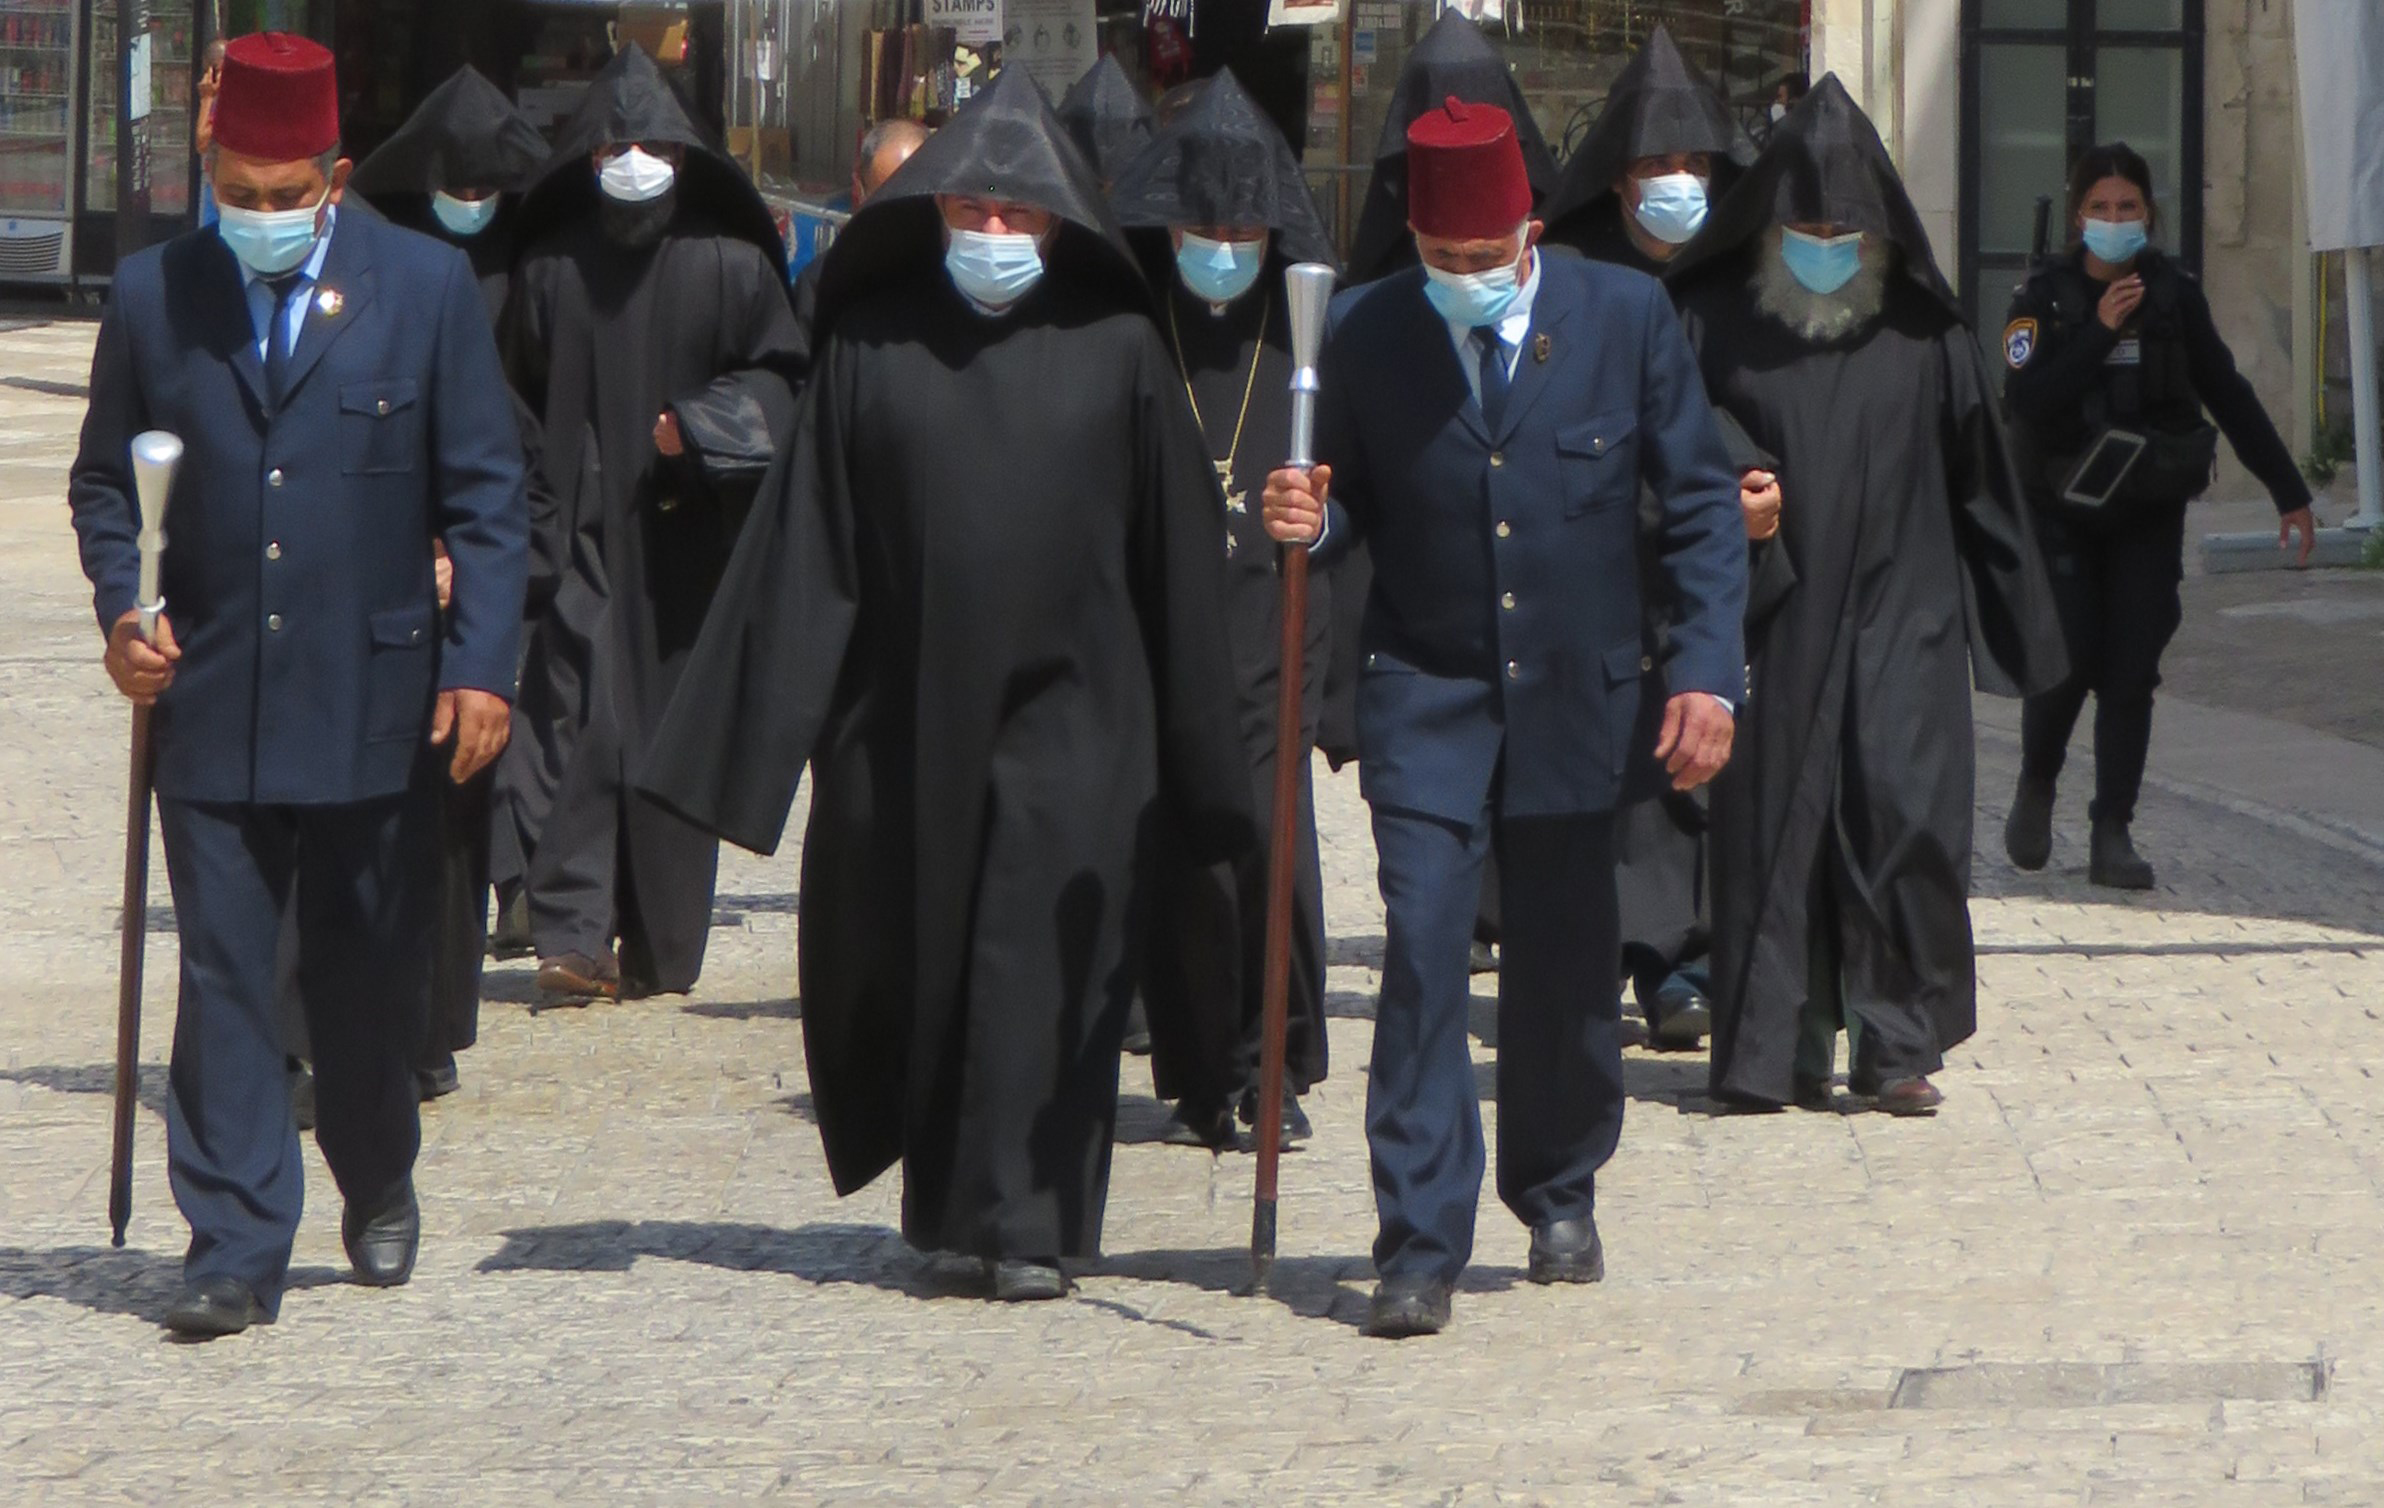 An Armenian Orthodox Procession, donning masks, makes its way through the Old City of Jerusalem.